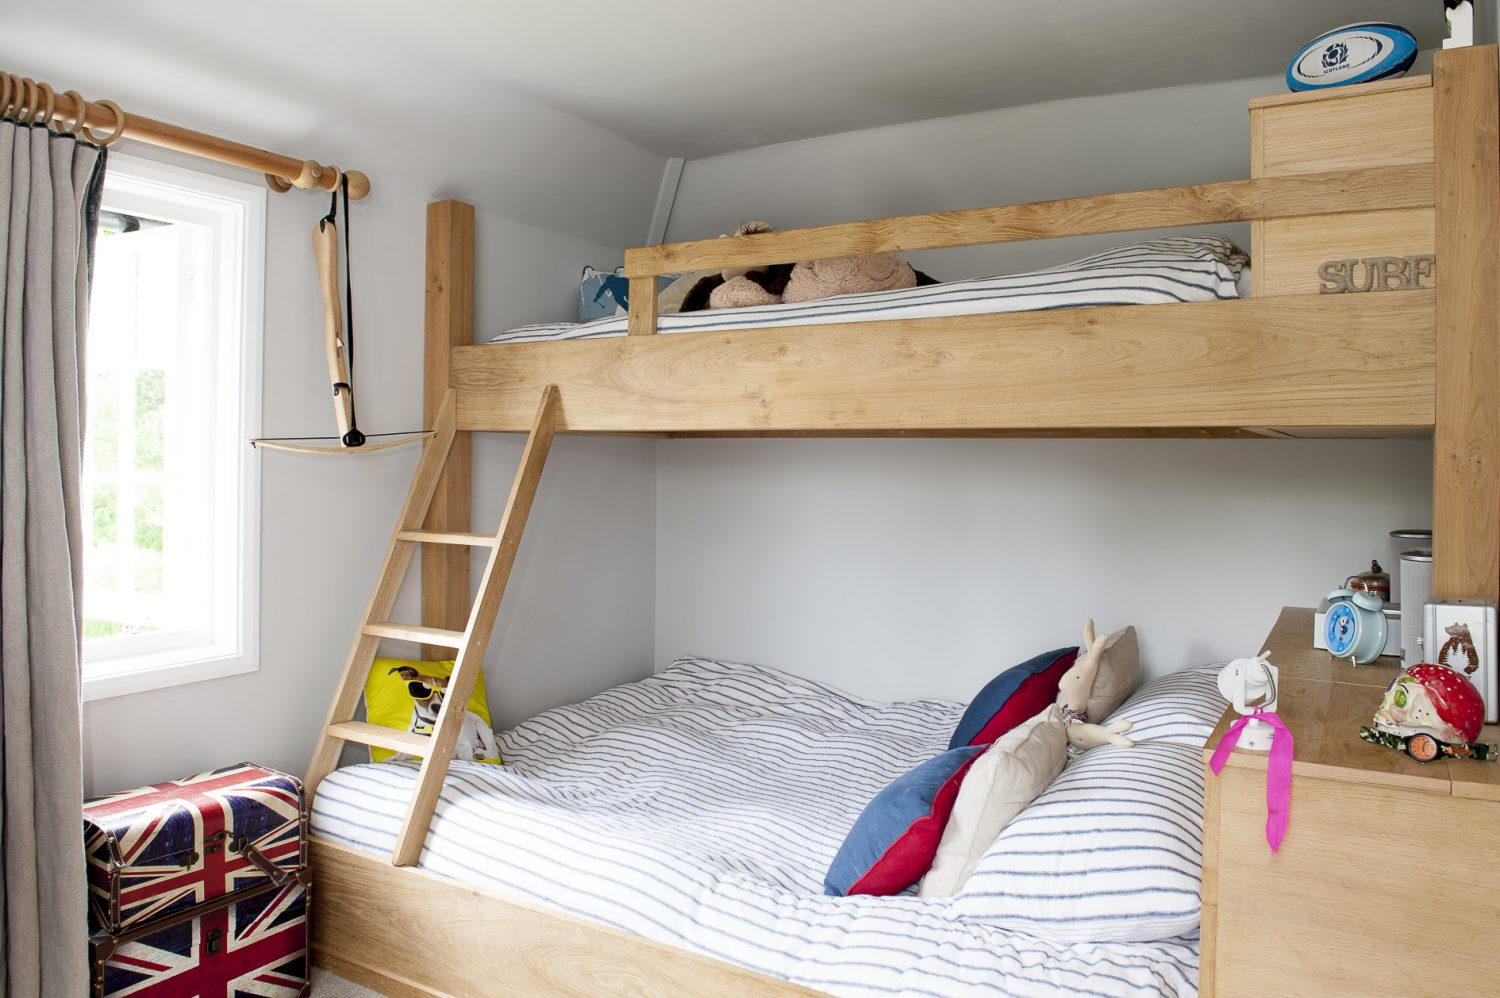 Greg Buchan has again woven his magic and created great chalet-style oak bunk beds